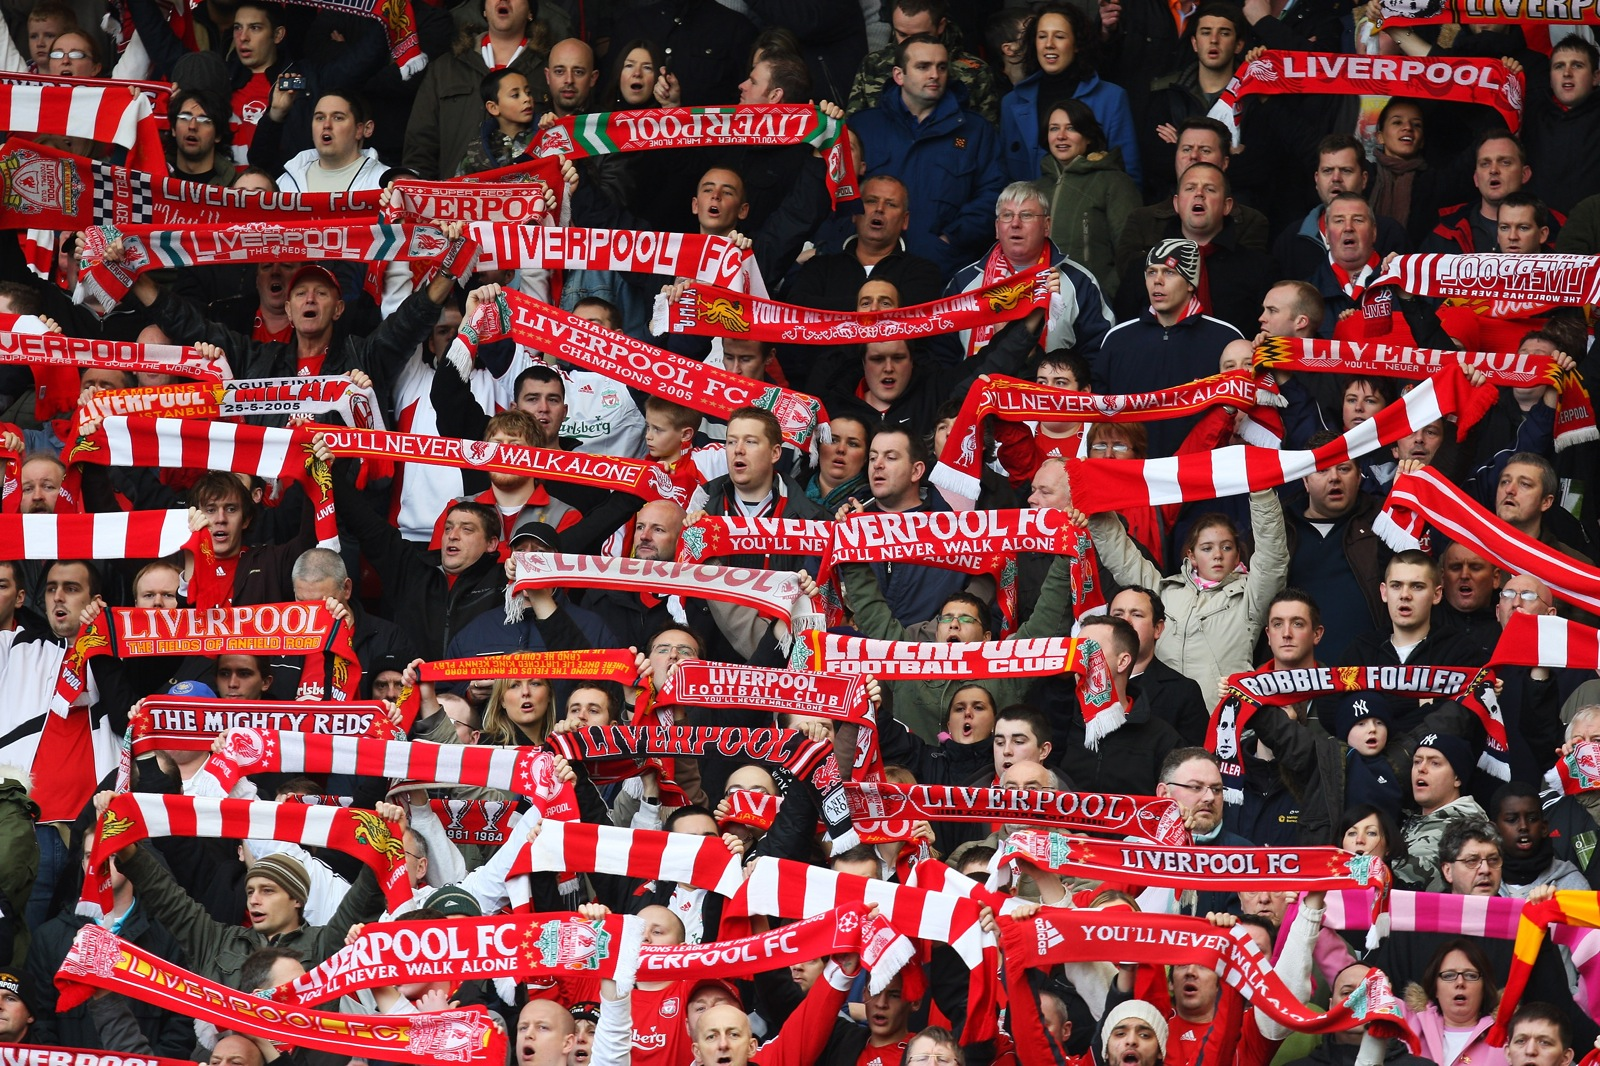 100 000 Liverpool Fans Plan Takeover 226 Quot Are They Having A